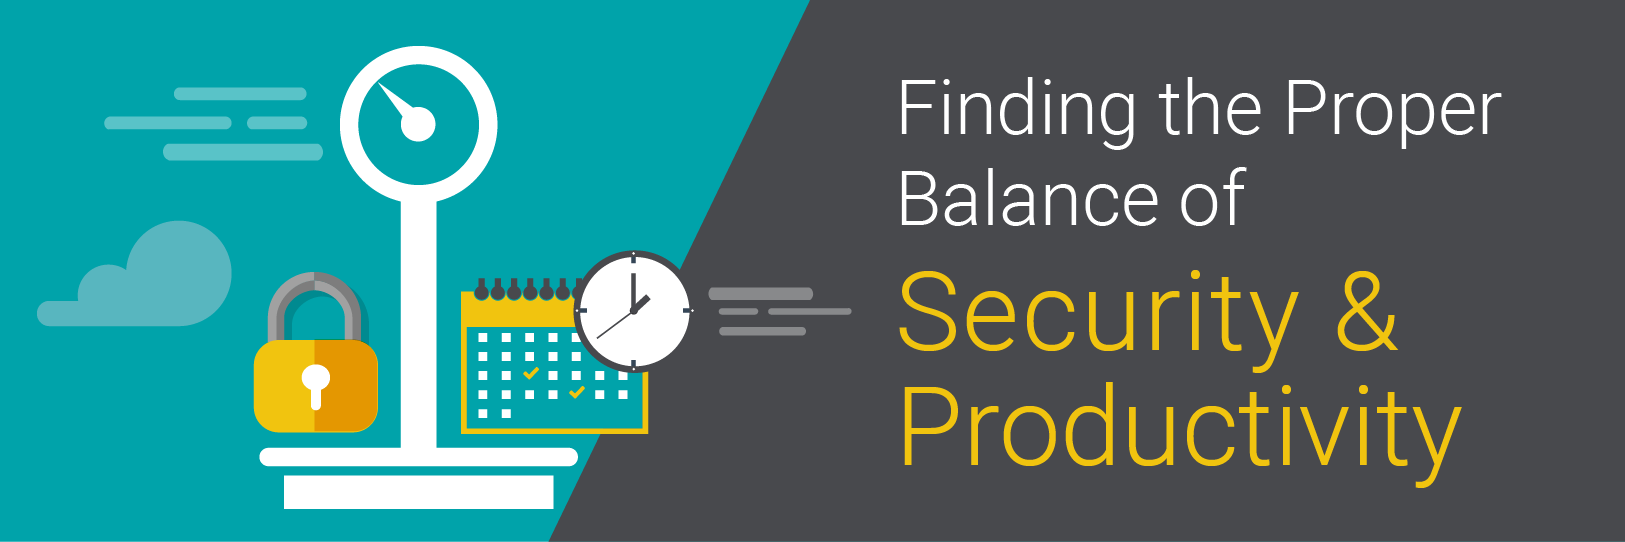 Finding the Proper Balance of Security & Productivity